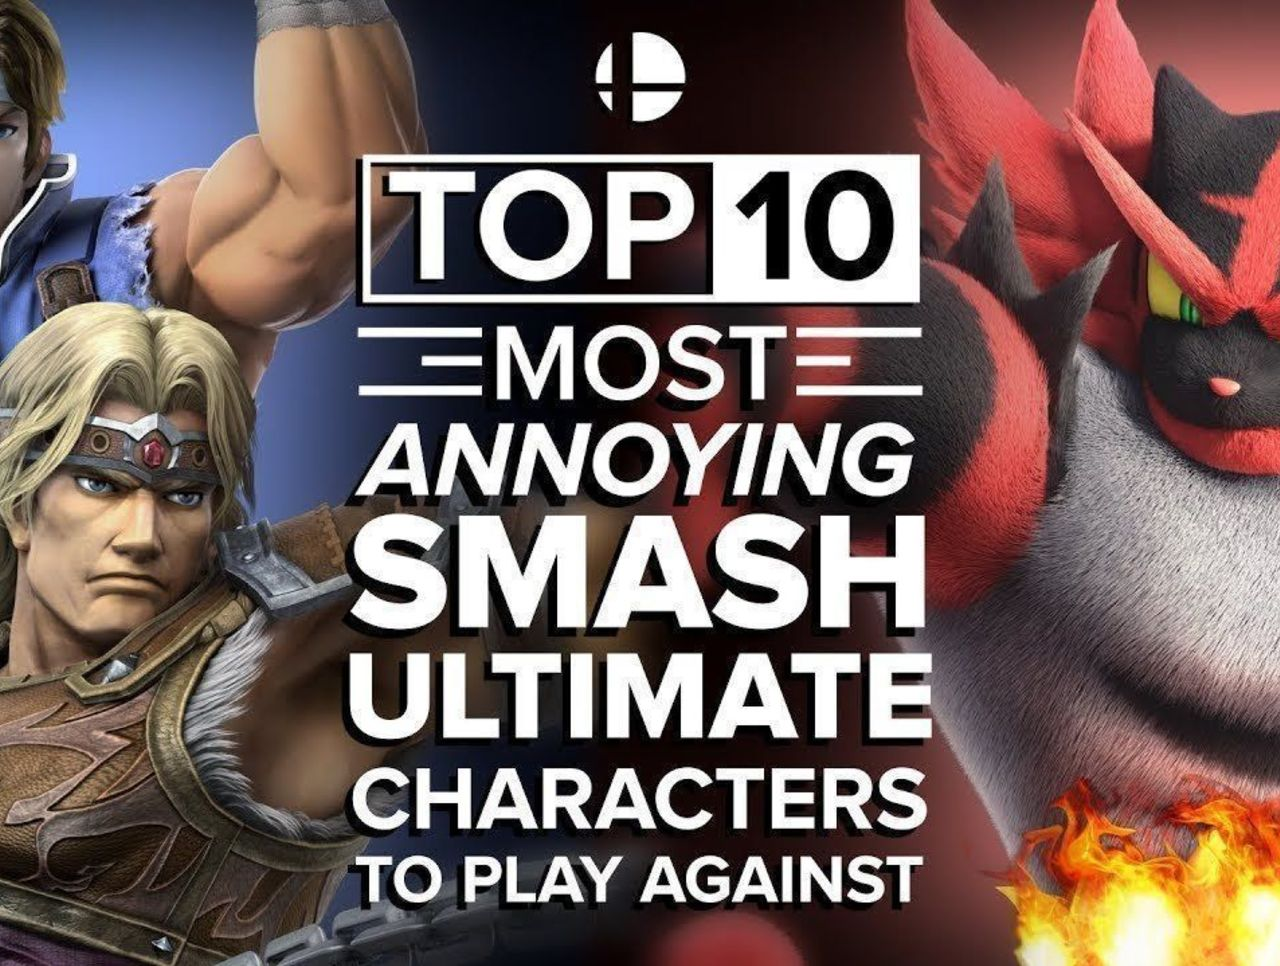 The Top 10 Most Annoying Smash Ultimate Characters to Play Against